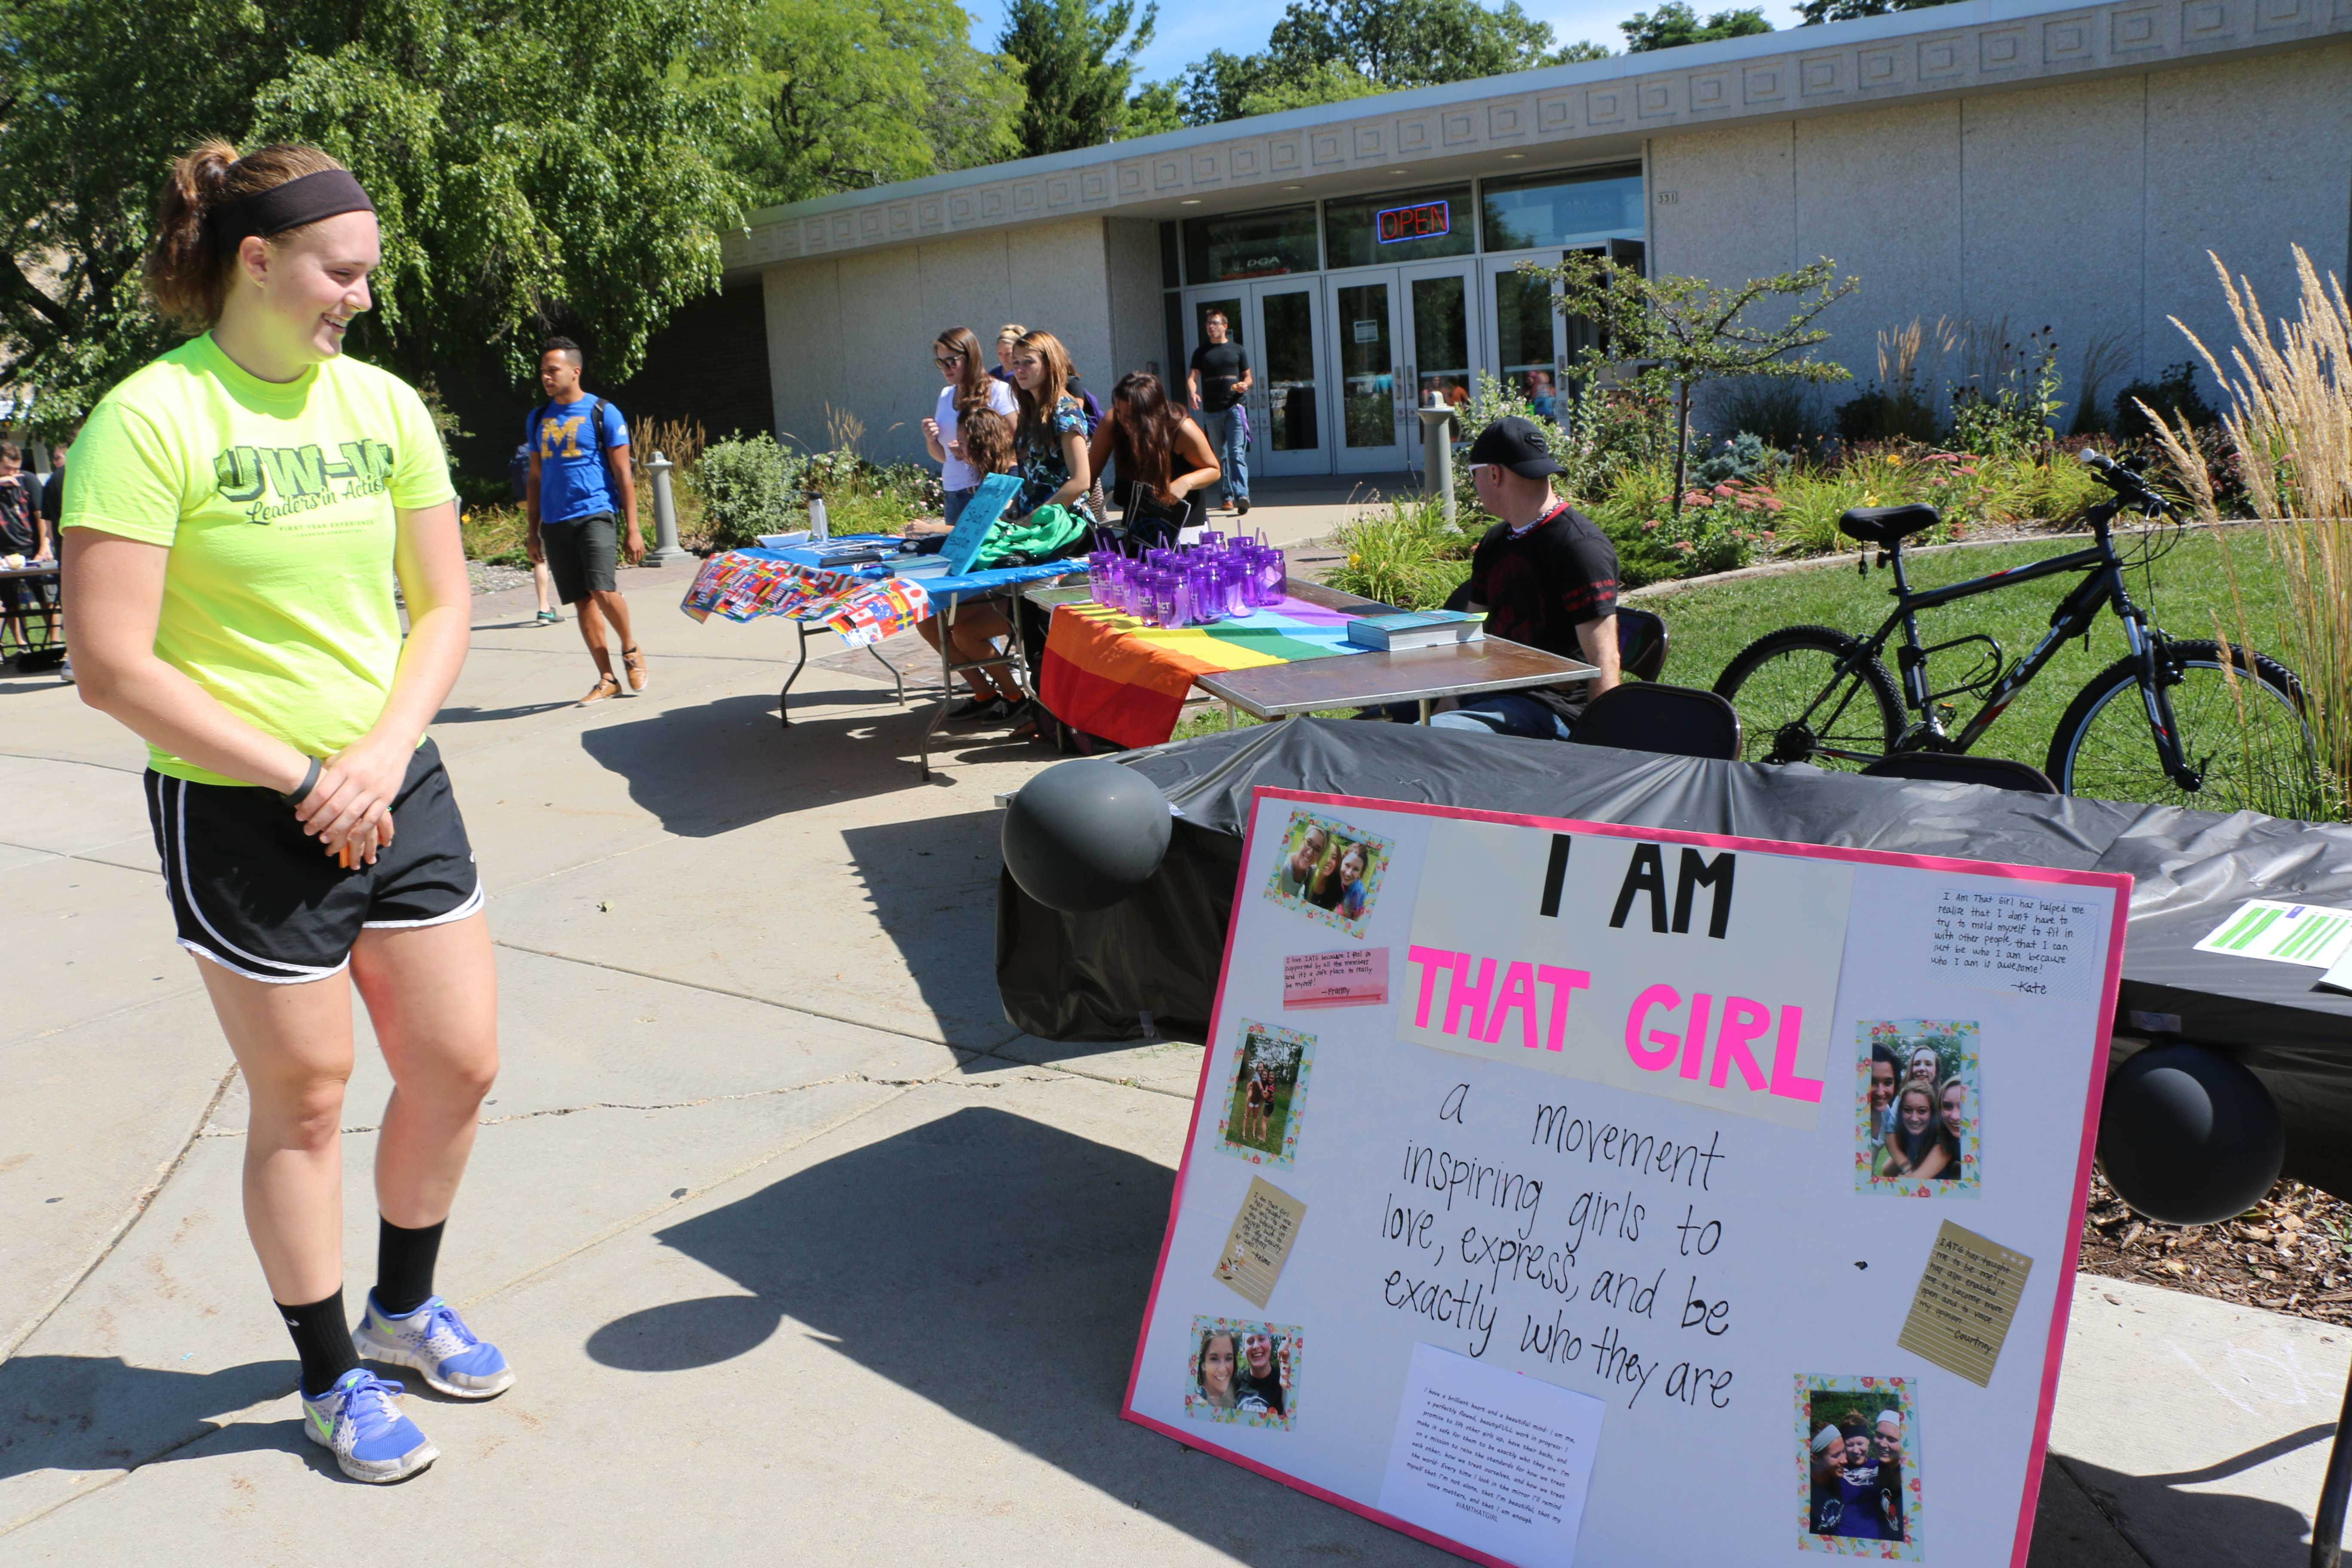 Junior biology major Kaitlyn Mckay discovers the I Am That Girl table at the Involvement Fair held Sept. 9 on the Wyman Mall. I Am That Girl had 104 women show interest in their chapter at their first appearance at the fair.  Photo by Amber Levenhagen